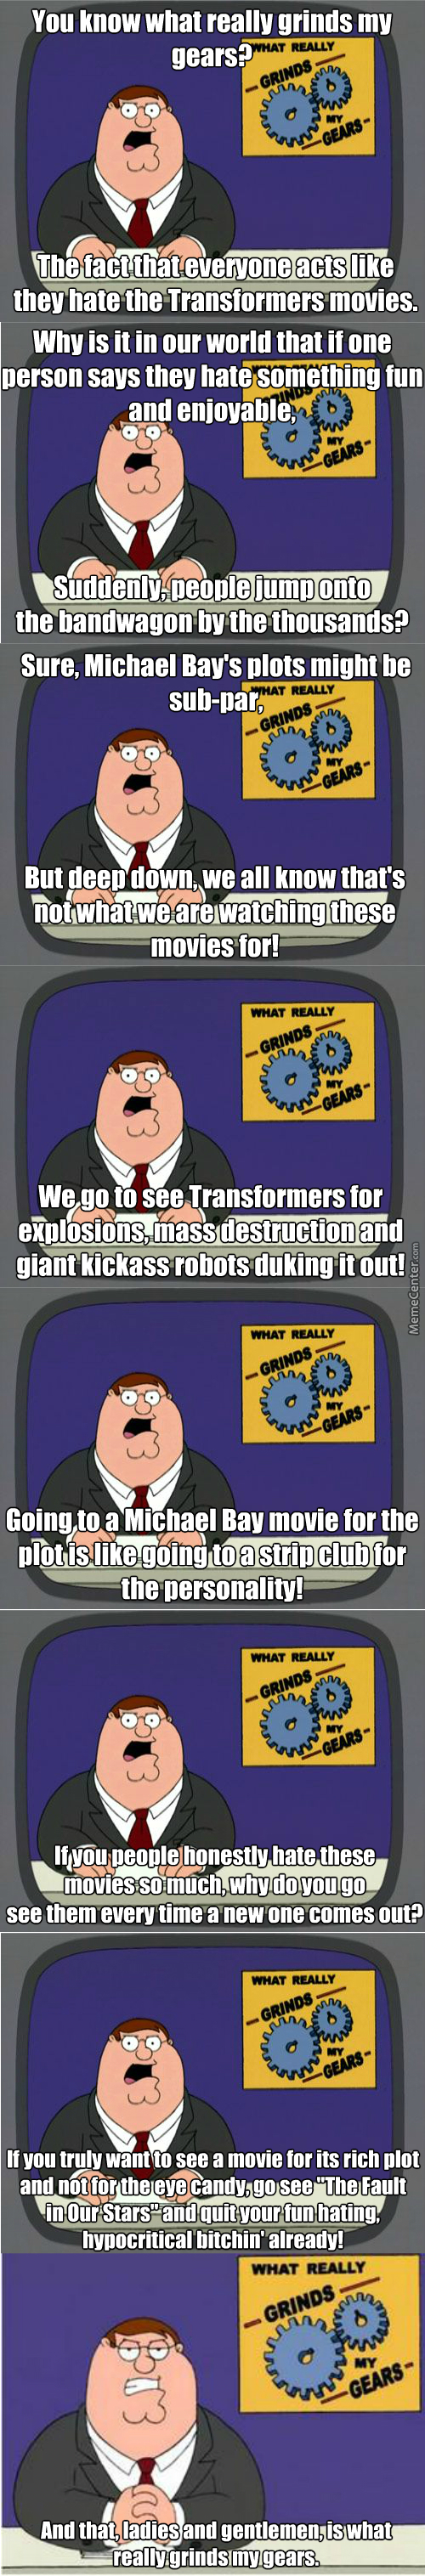 Dear Michael Bay And Transformers Haters...